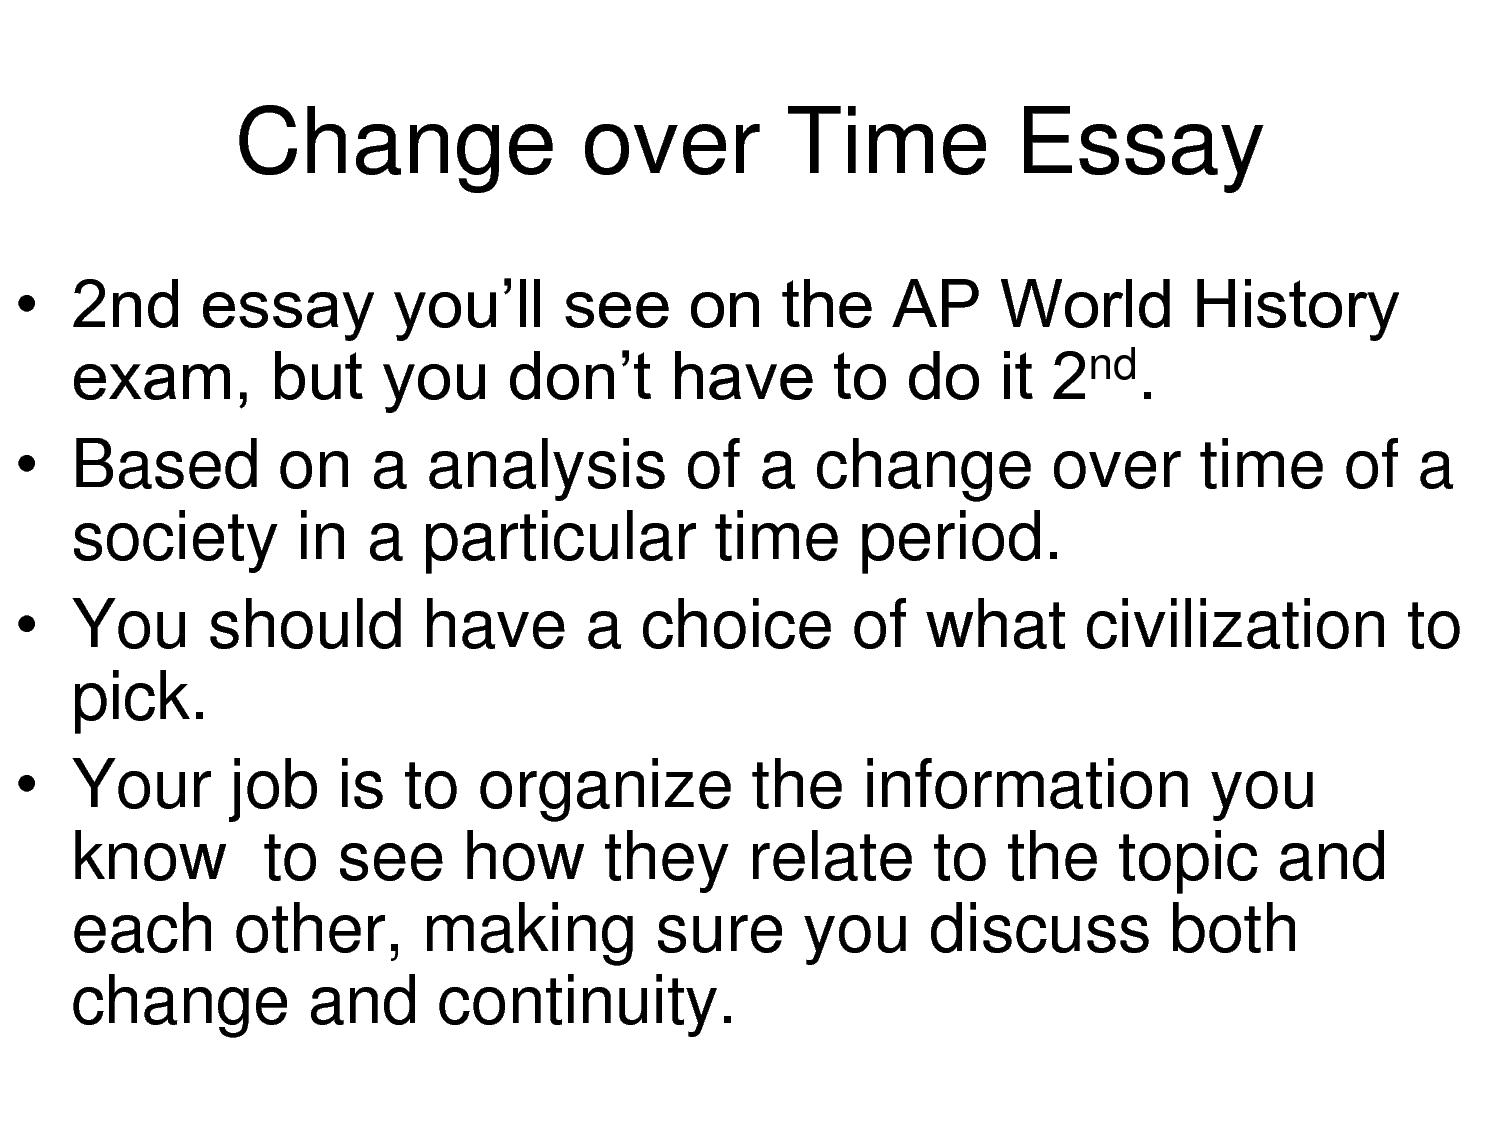 change and continuities over time essay help Writing a continuity and change over time essay as an outline to help you write your and continuities address as much of the time period as.